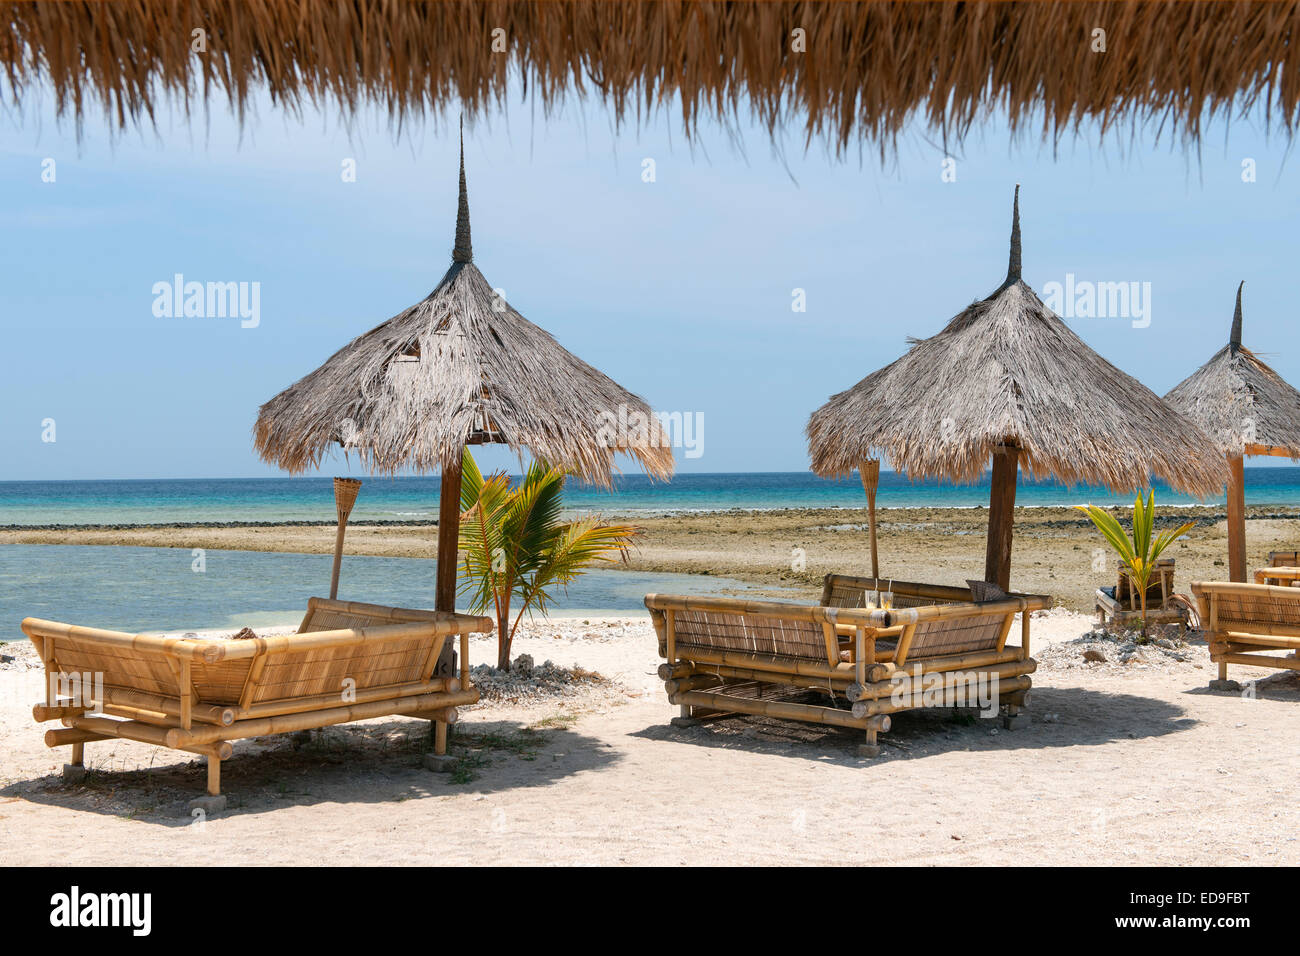 Beach loungers on Gili Air island, Indonesia. - Stock Image